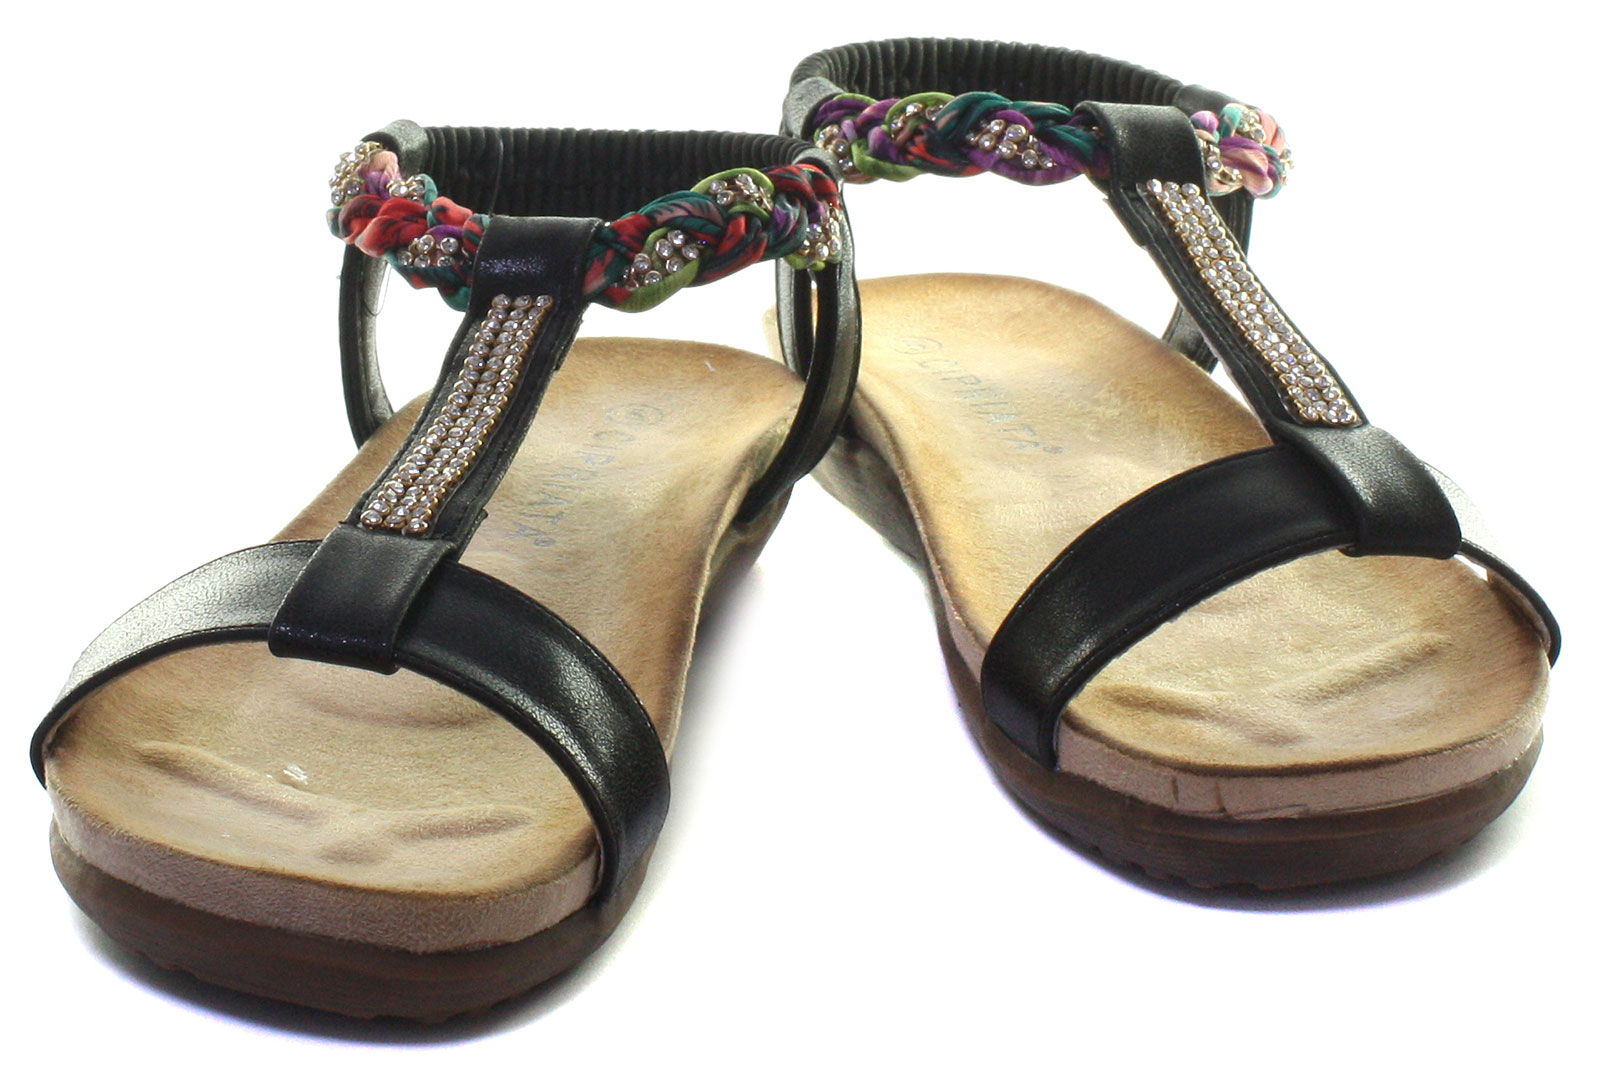 New-Cipriata-Gemma-Jewelled-Womens-Halter-Back-Sandals-ALL-SIZES-AND-COLOURS miniature 5